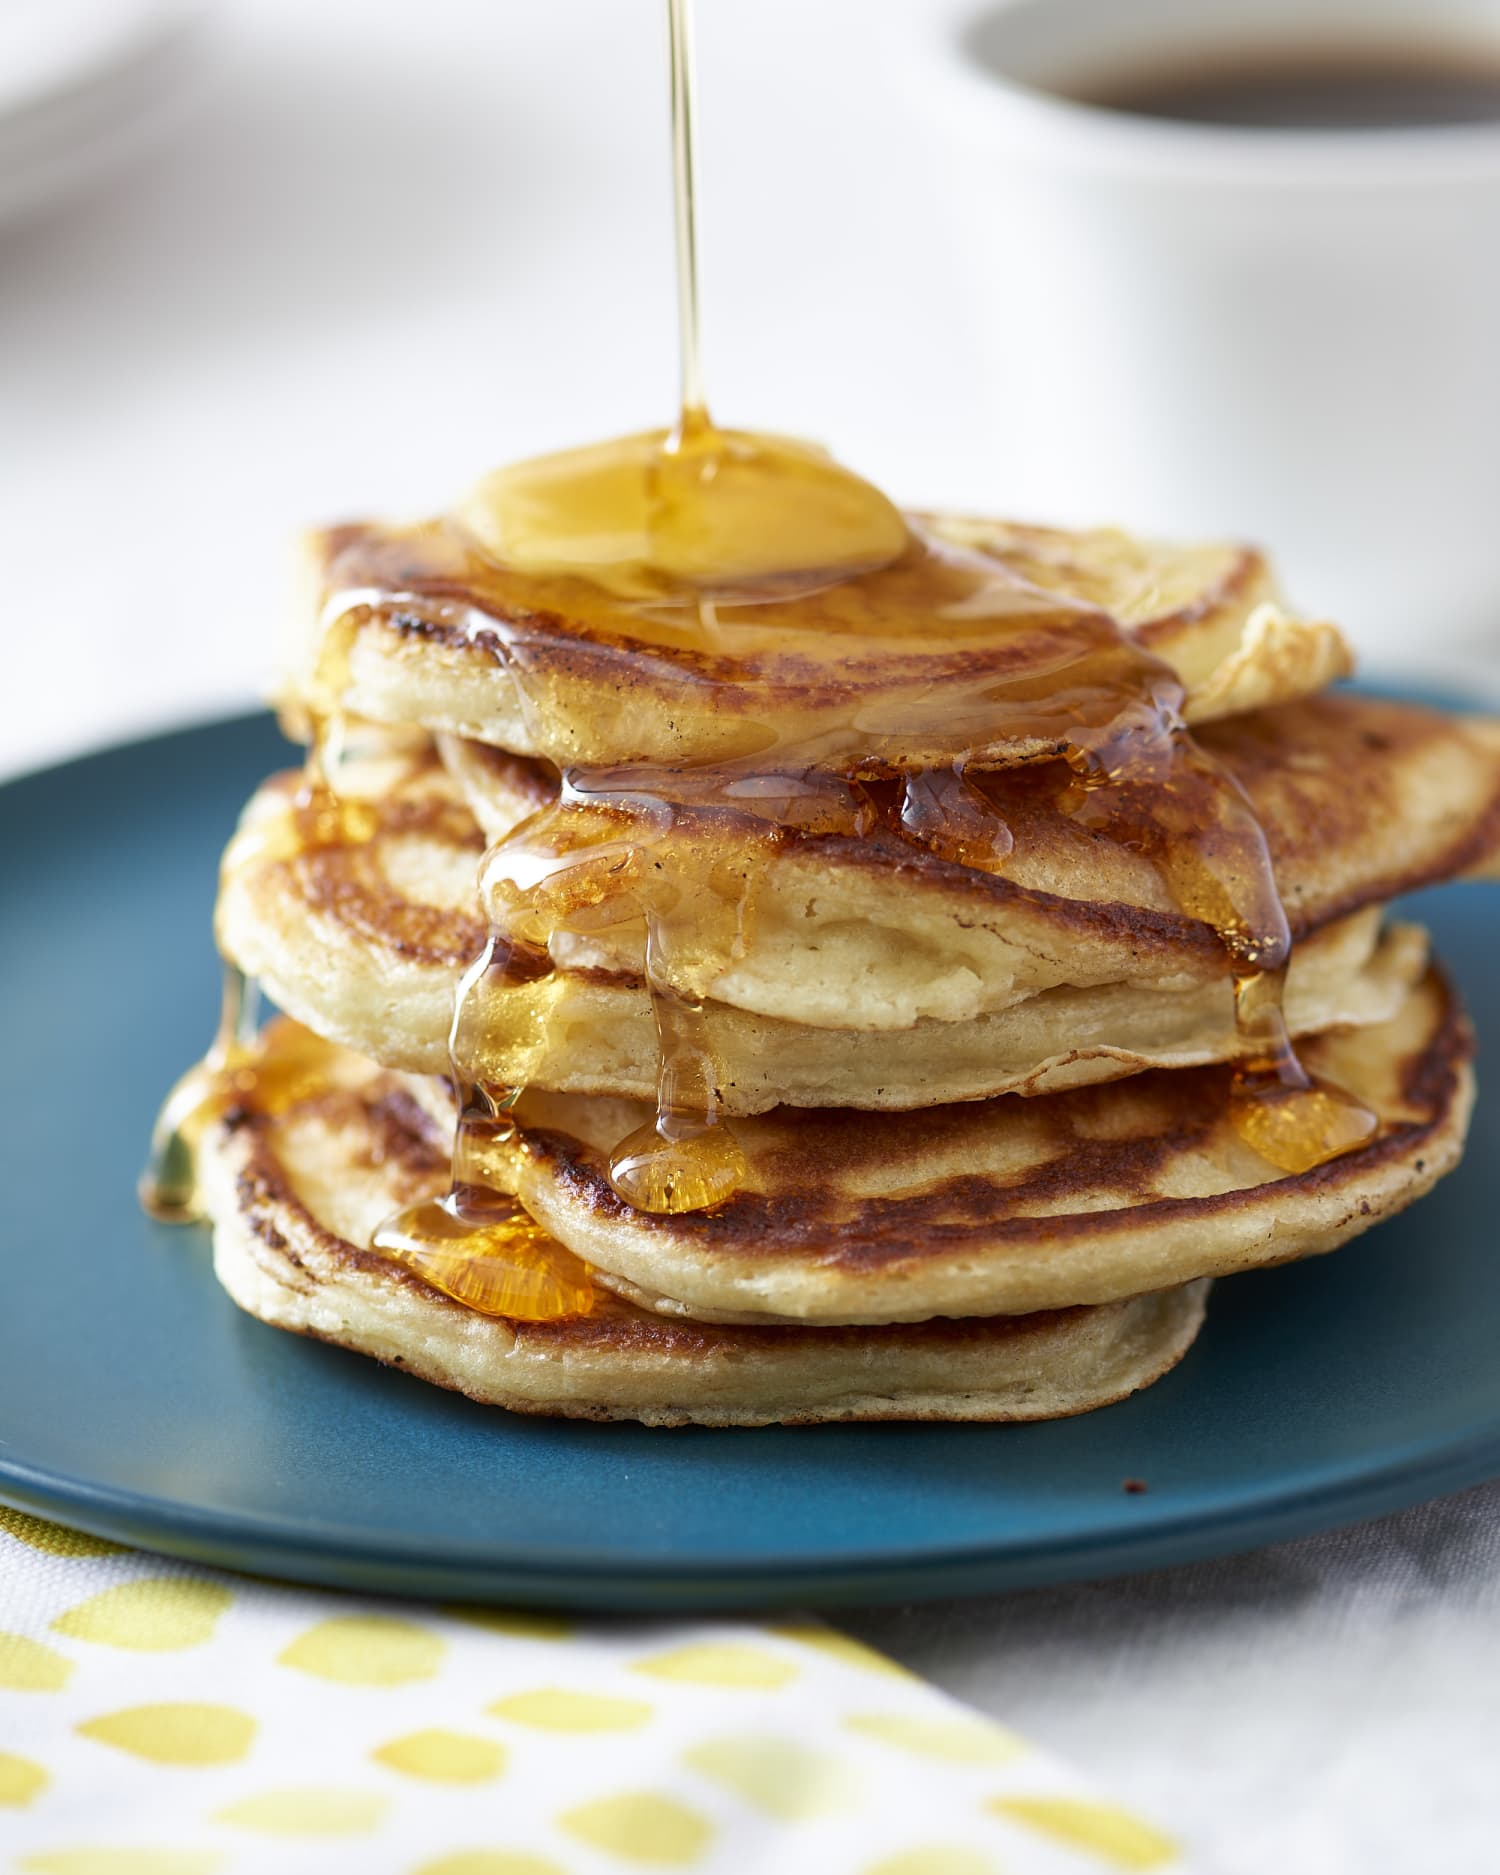 Become a Flipping Genius with the Smartest Pancake Recipes and Tips We Know